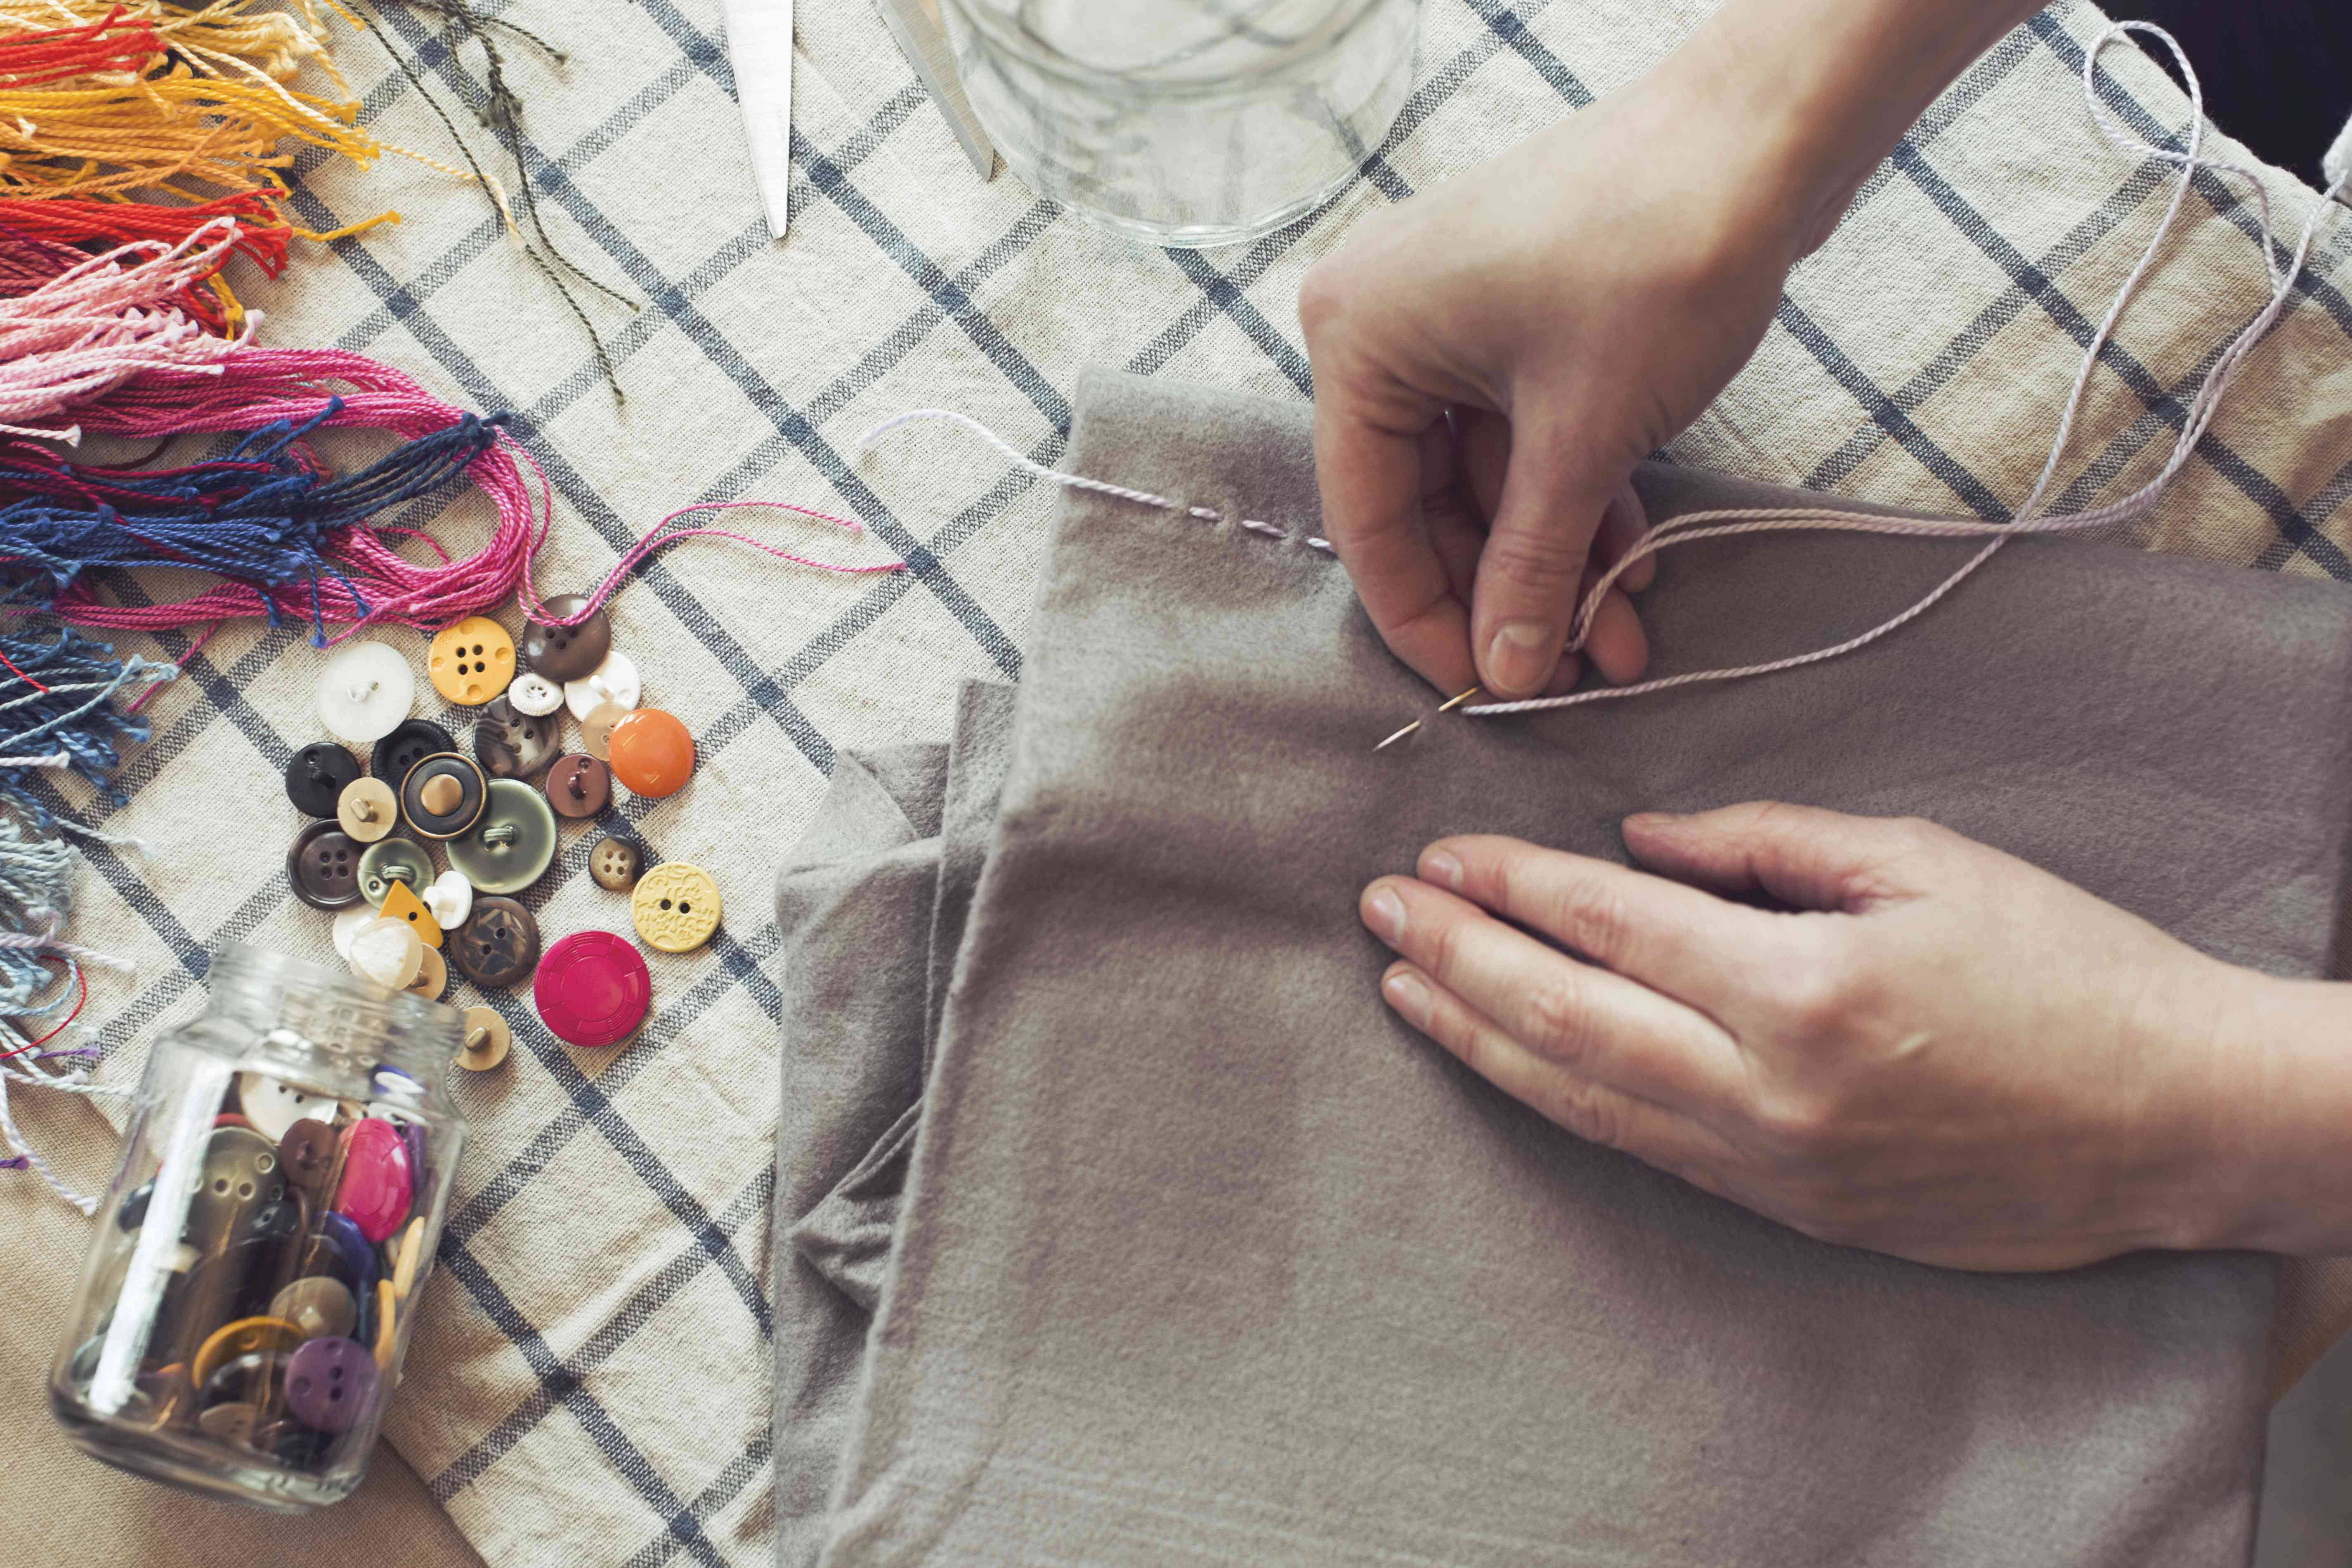 High-angle view of a person stitching fabric